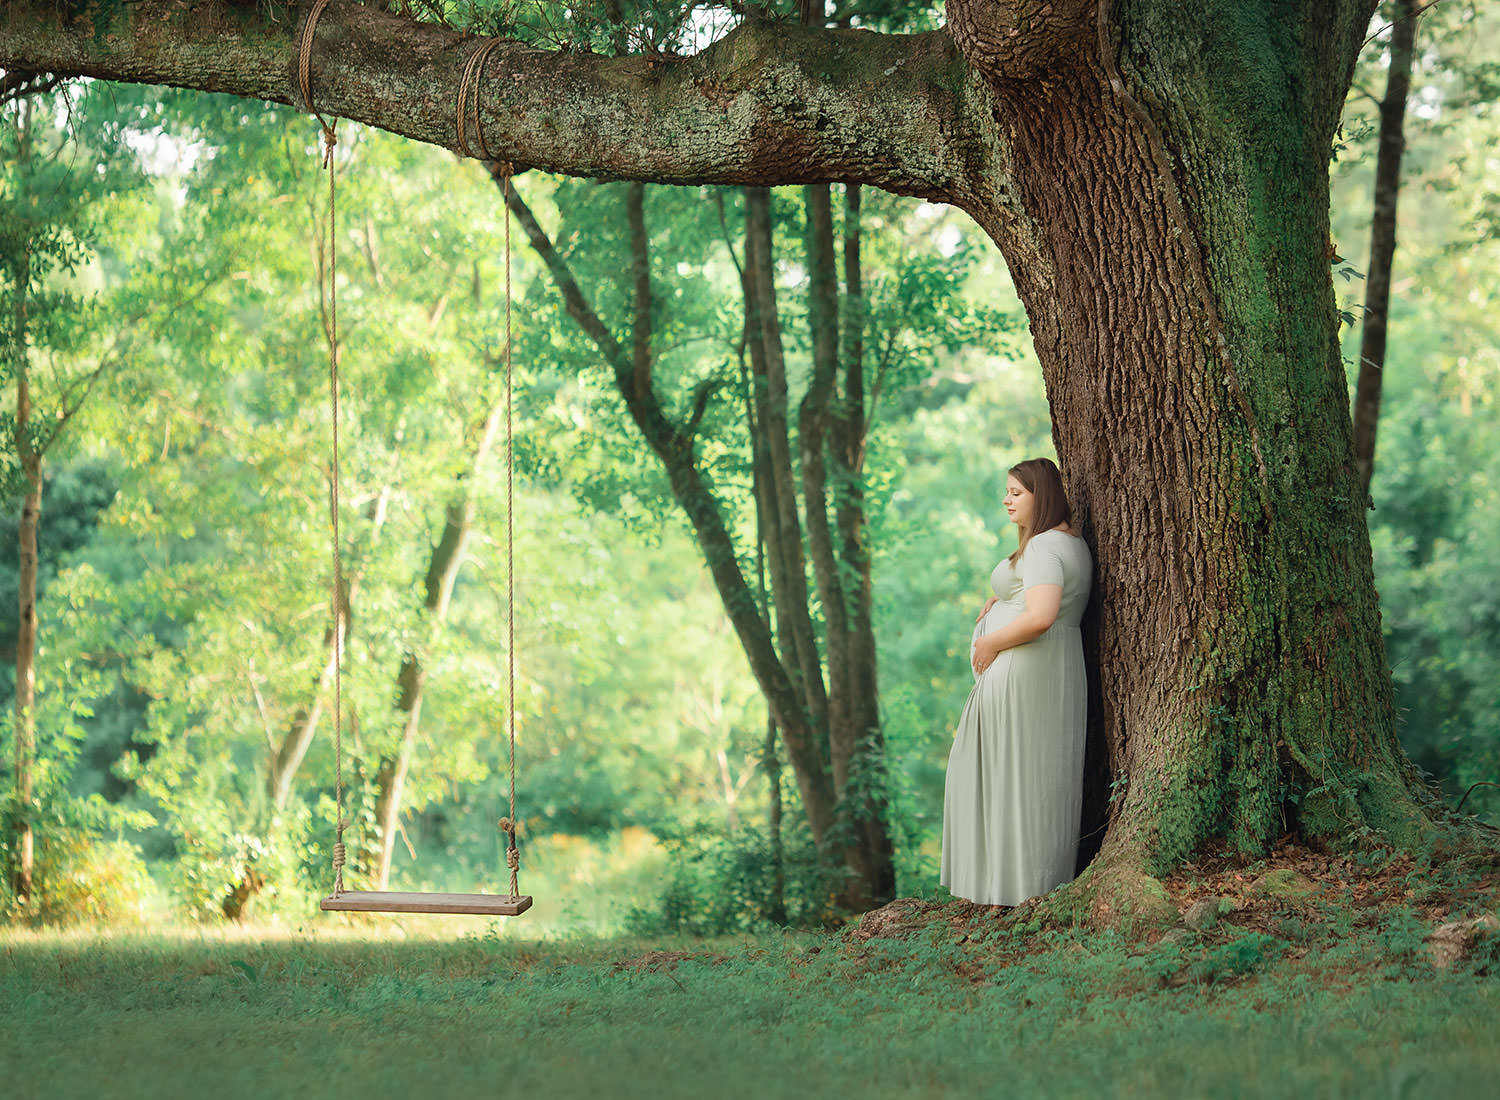 momma to be by tree swing